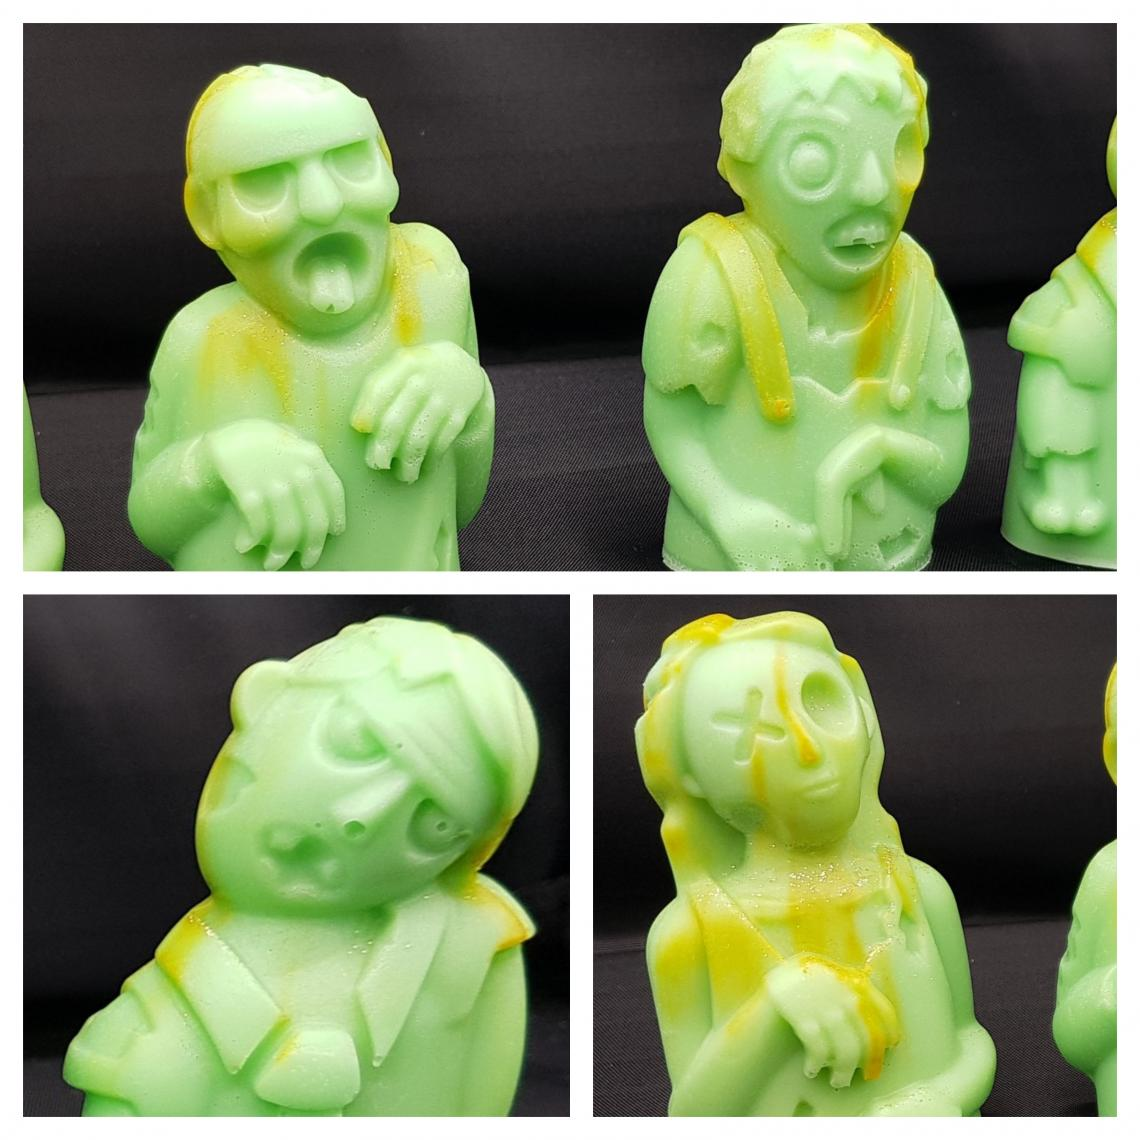 Zombie soaps in green for Elidyr Communities Trust.